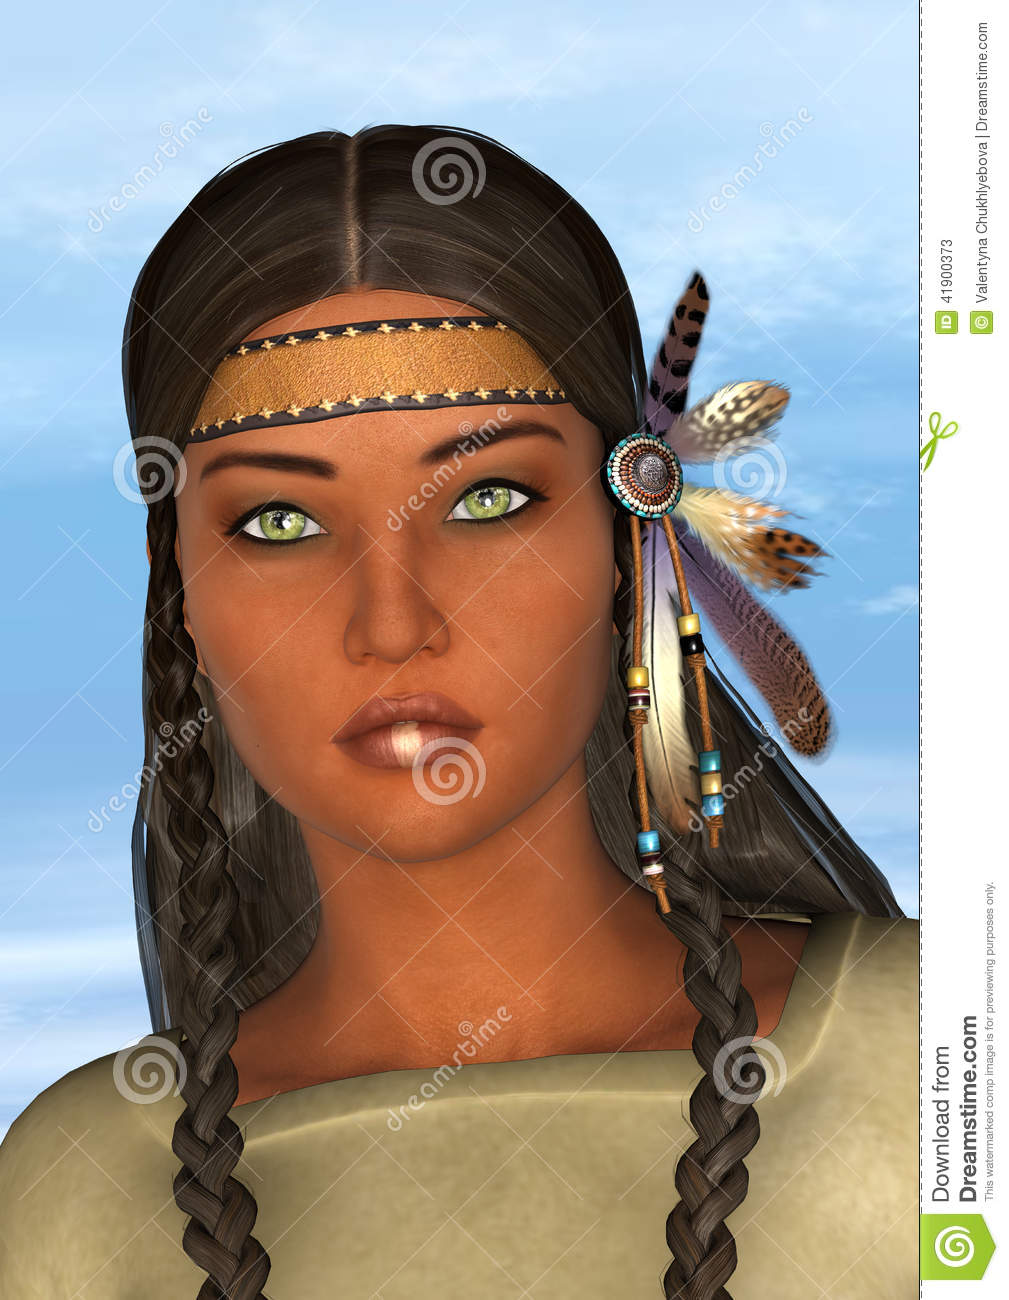 the representation of native americans in the movie in the mans image Movies, like pocahontas, only put children at a disadvantage because of the negative representation of native americans that is then believed in real life pocahontas is not the only movie guilty of misrepresenting native americans, a popular movie with teens and adults, the last of the mohicans , also gives viewers wrong impressions.